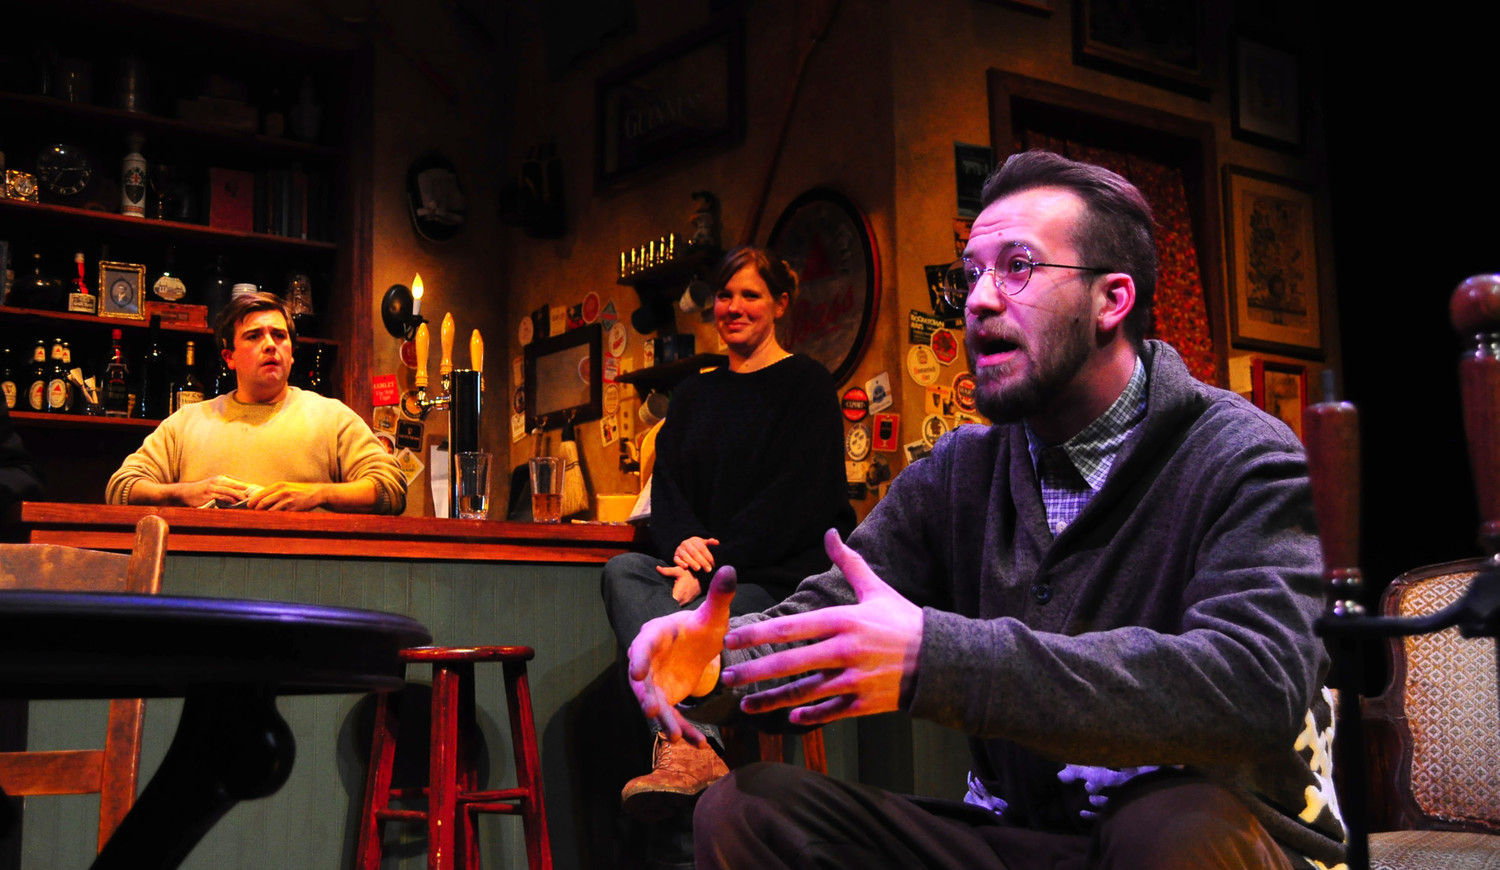 BWW Review: THE WEIR at Burning Coal Theatre Stirs Up Haunting Tale of Woe